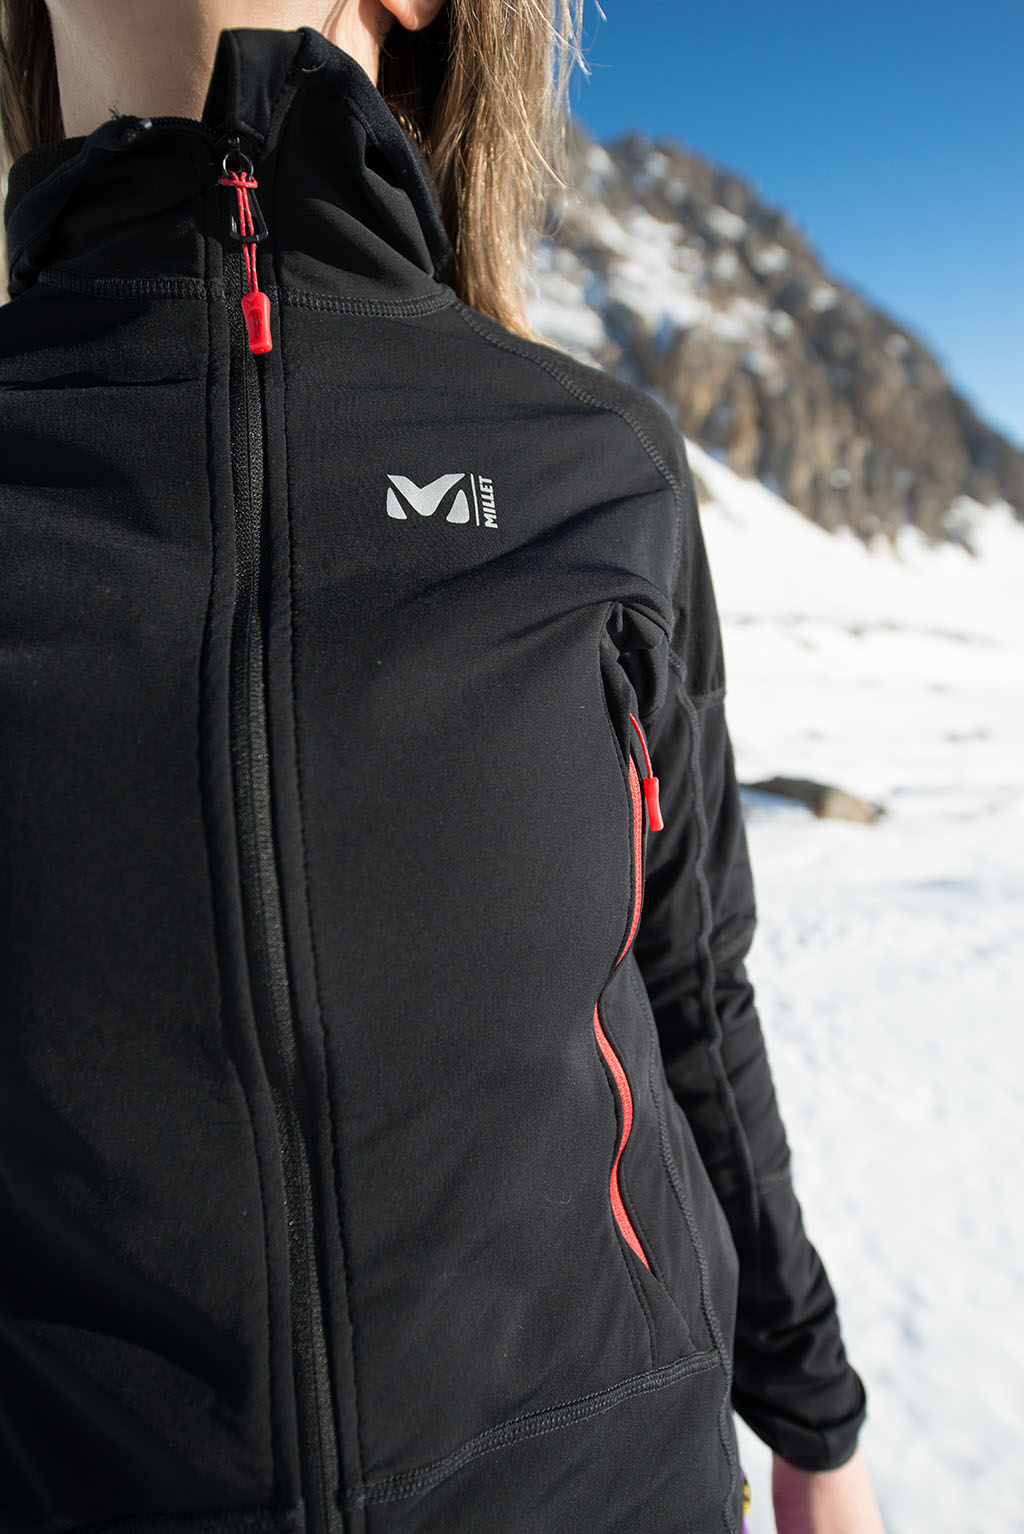 Test polaire Millet LD Pierra Ment' Jacket